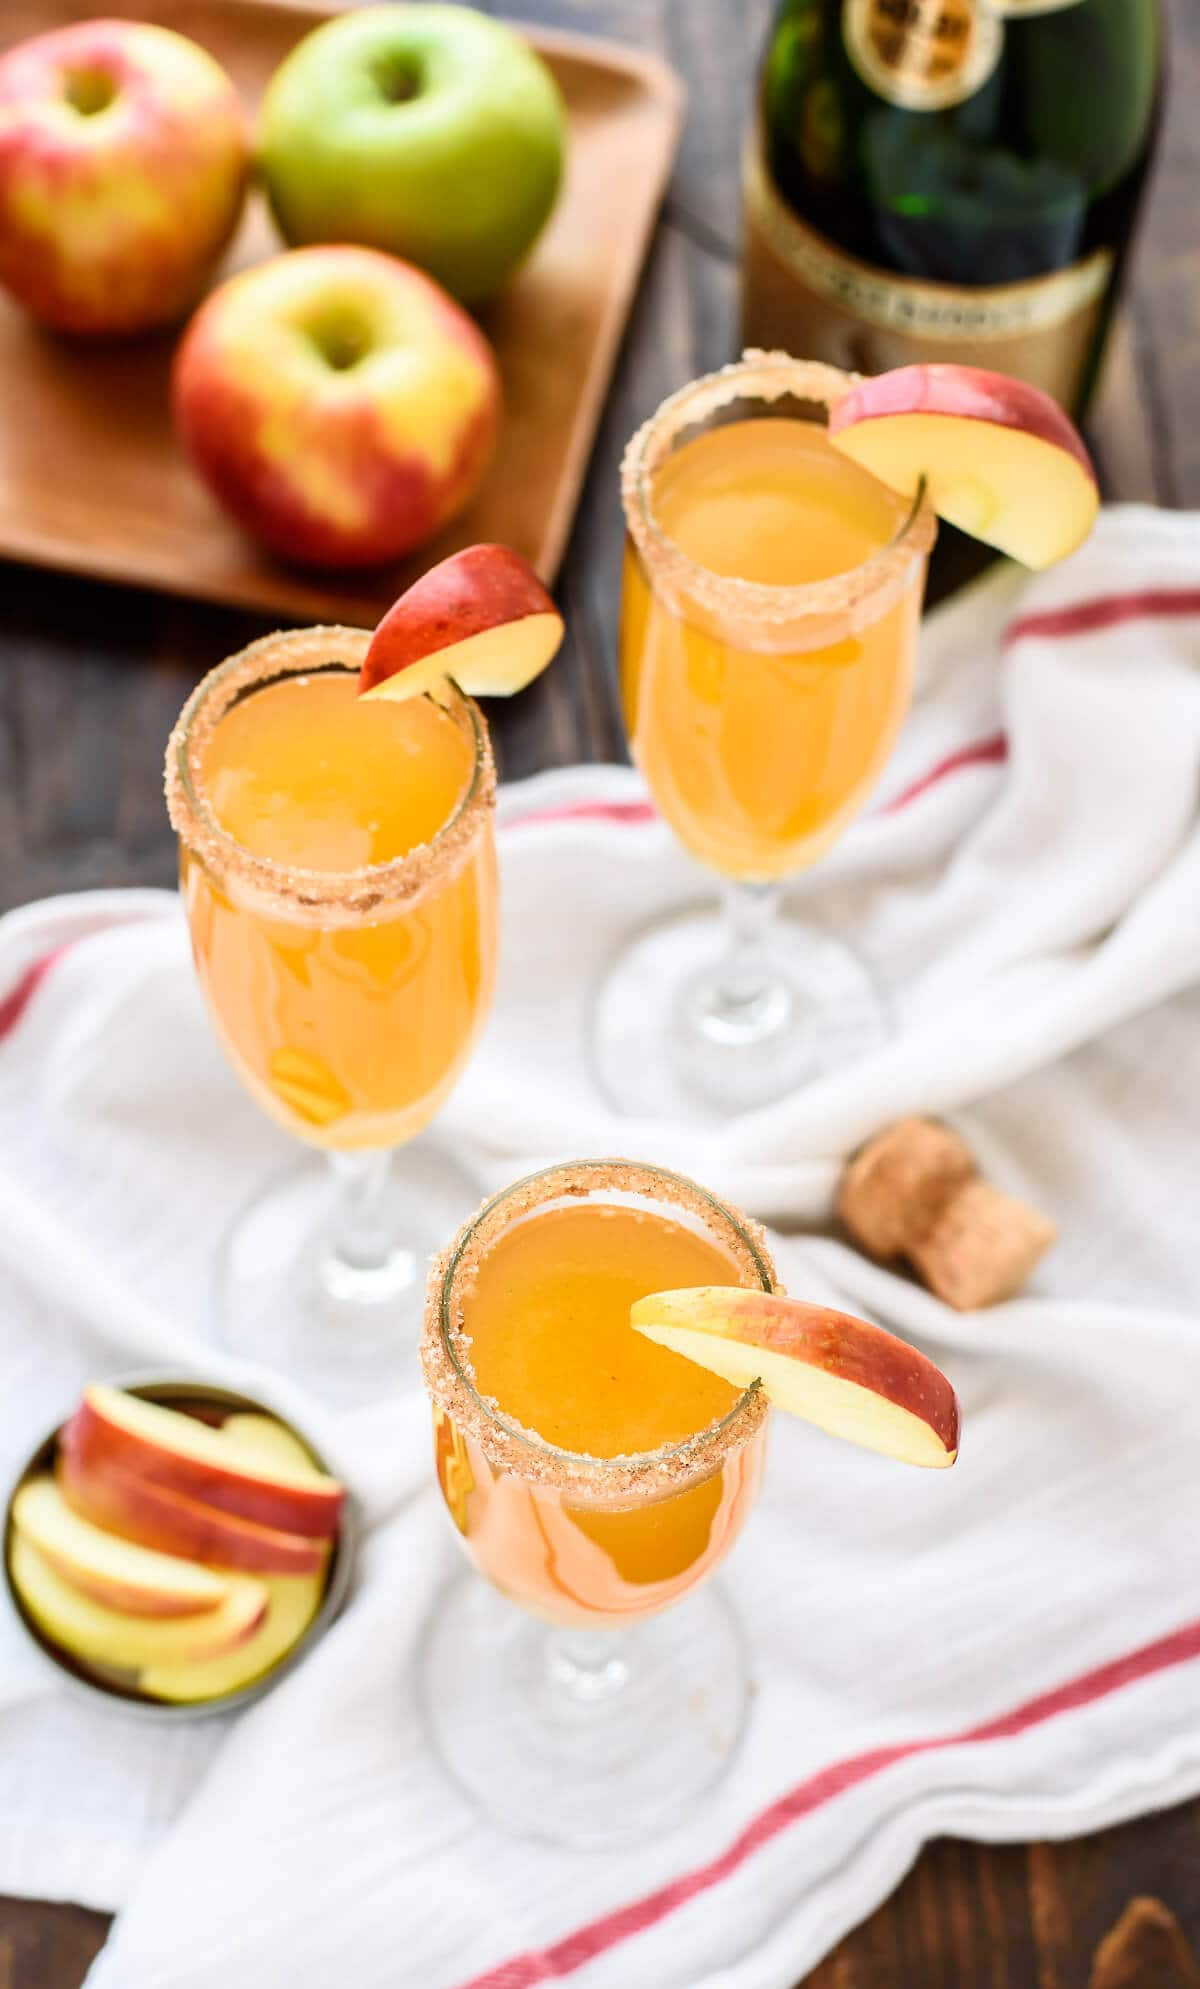 With only 3 ingredients, this beautiful and delicious Apple Cider Champagne Cocktail recipe will become your signature drink!